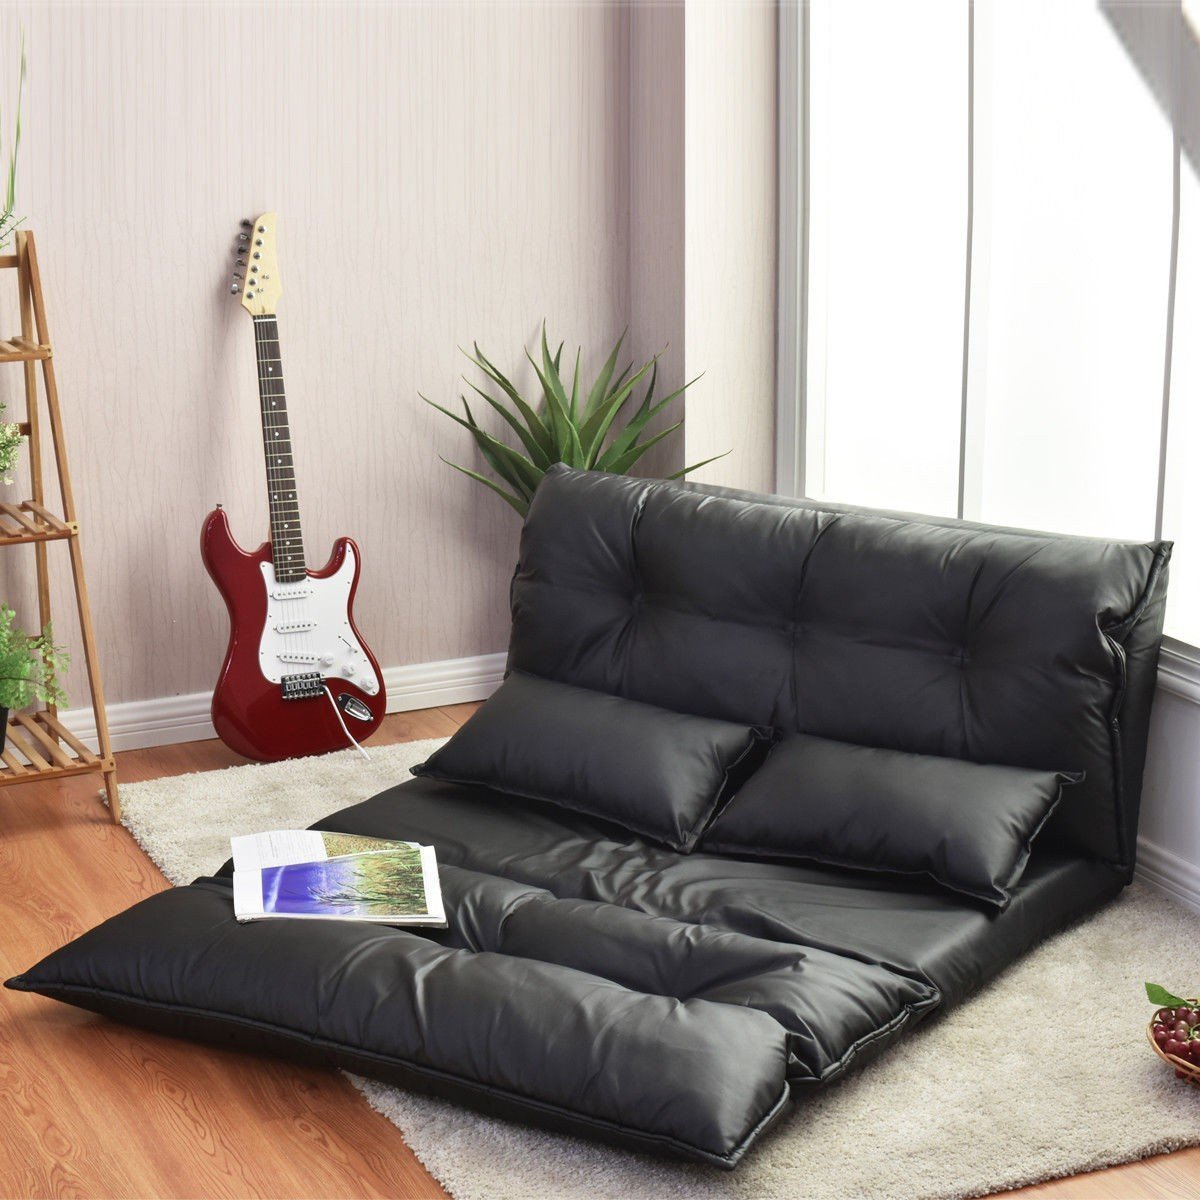 Buy Merax 194 174 Pu Leather Adjustable Floor Sofa Bed Lounge